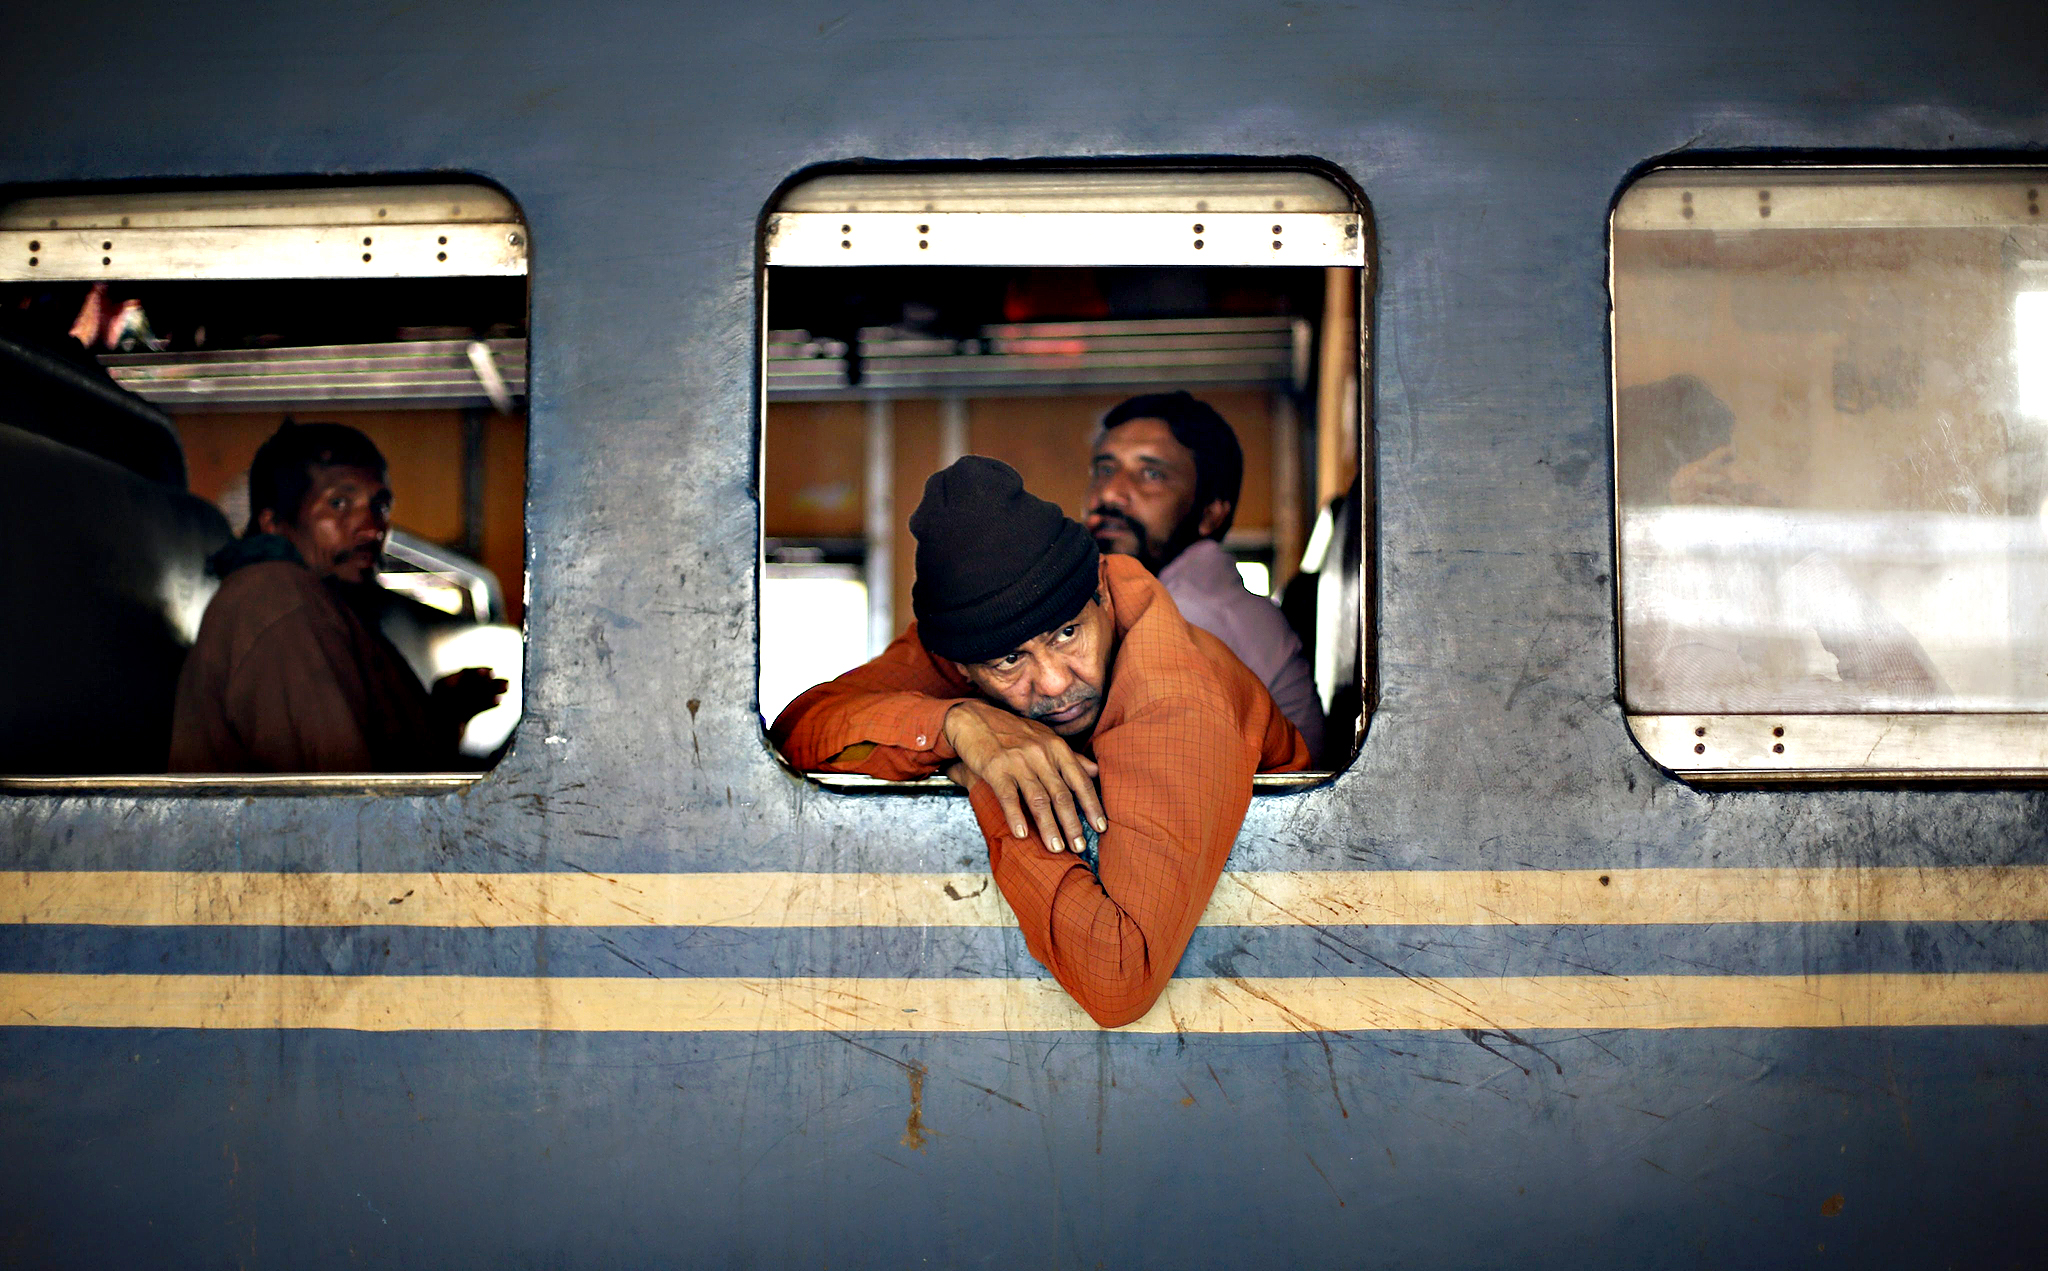 Boarded passengers wait for a train to depart during a country wide strike called by the Bangladesh Nationalist Party (BNP) in Dhaka, Bangladesh on Monday. Banglaseh economy has been suffering huge loss after the contineous blokade and strike called by BNP led 20-party for the last 27 days